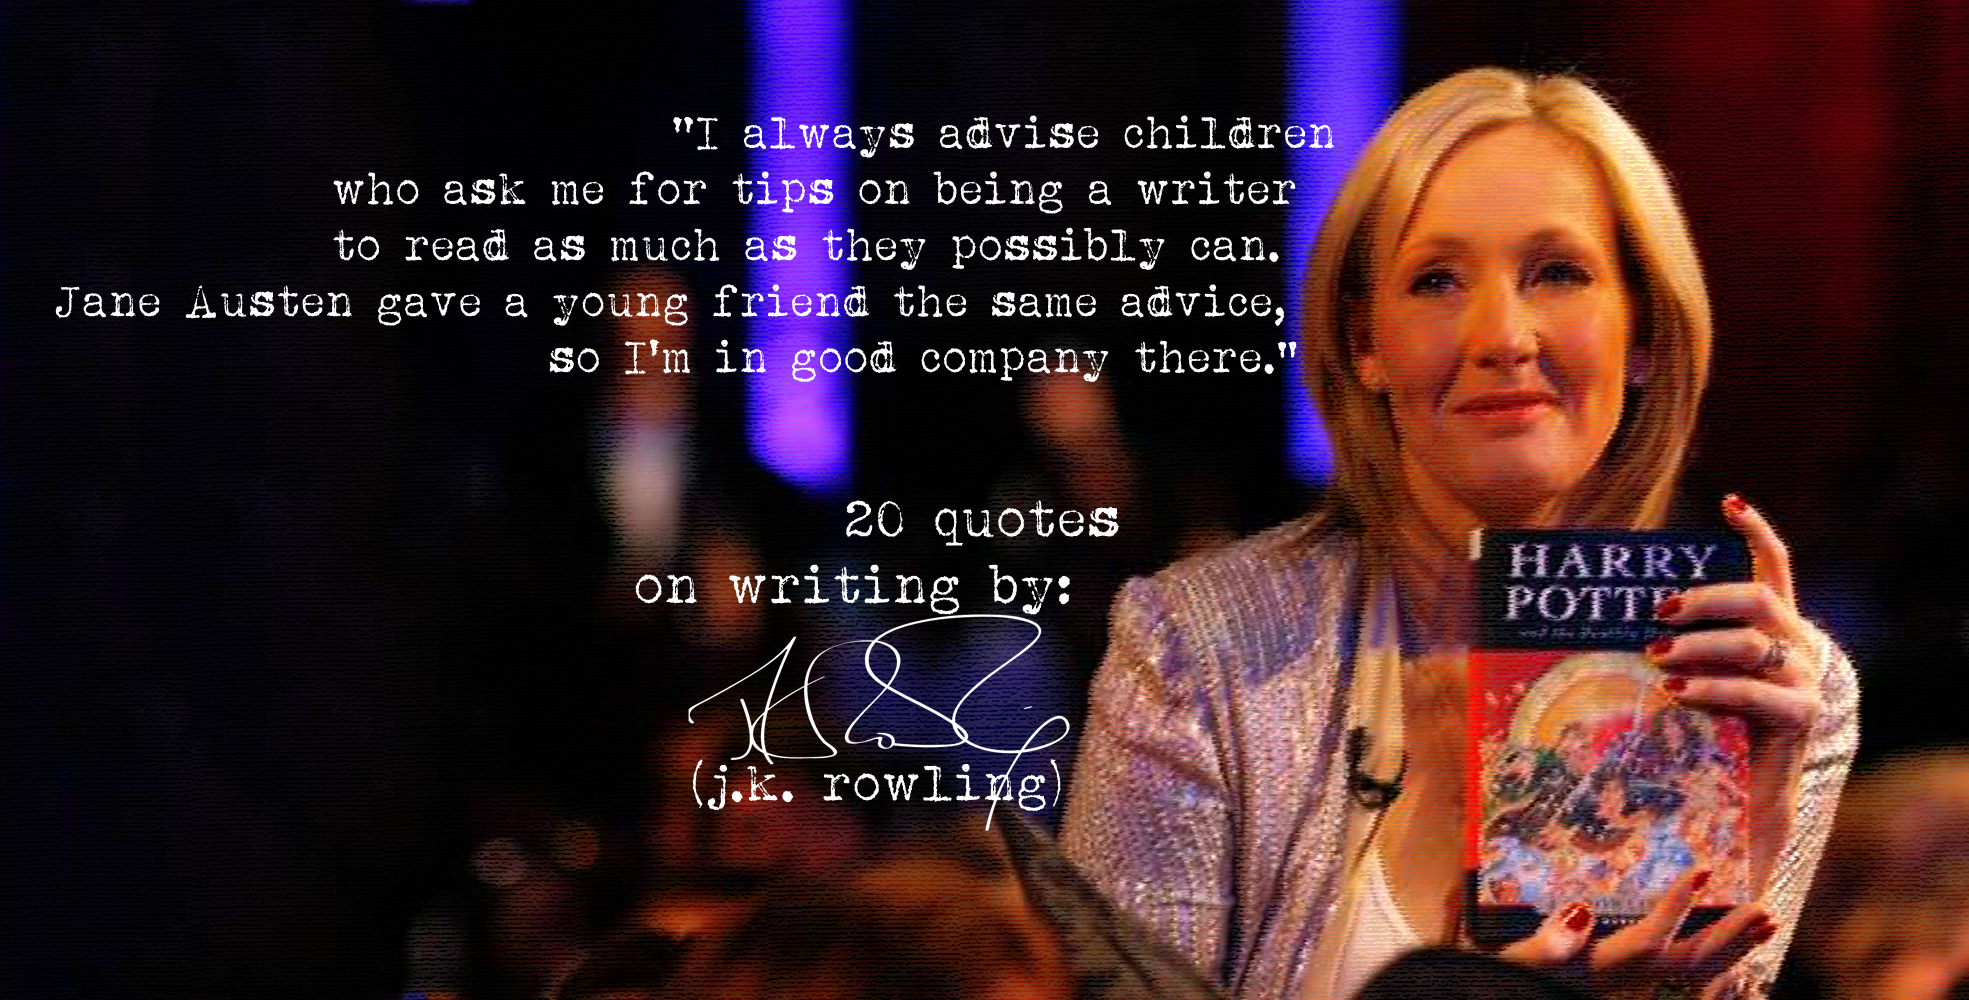 jk rowling essay sweatshops essay j k rowling writing harry potter